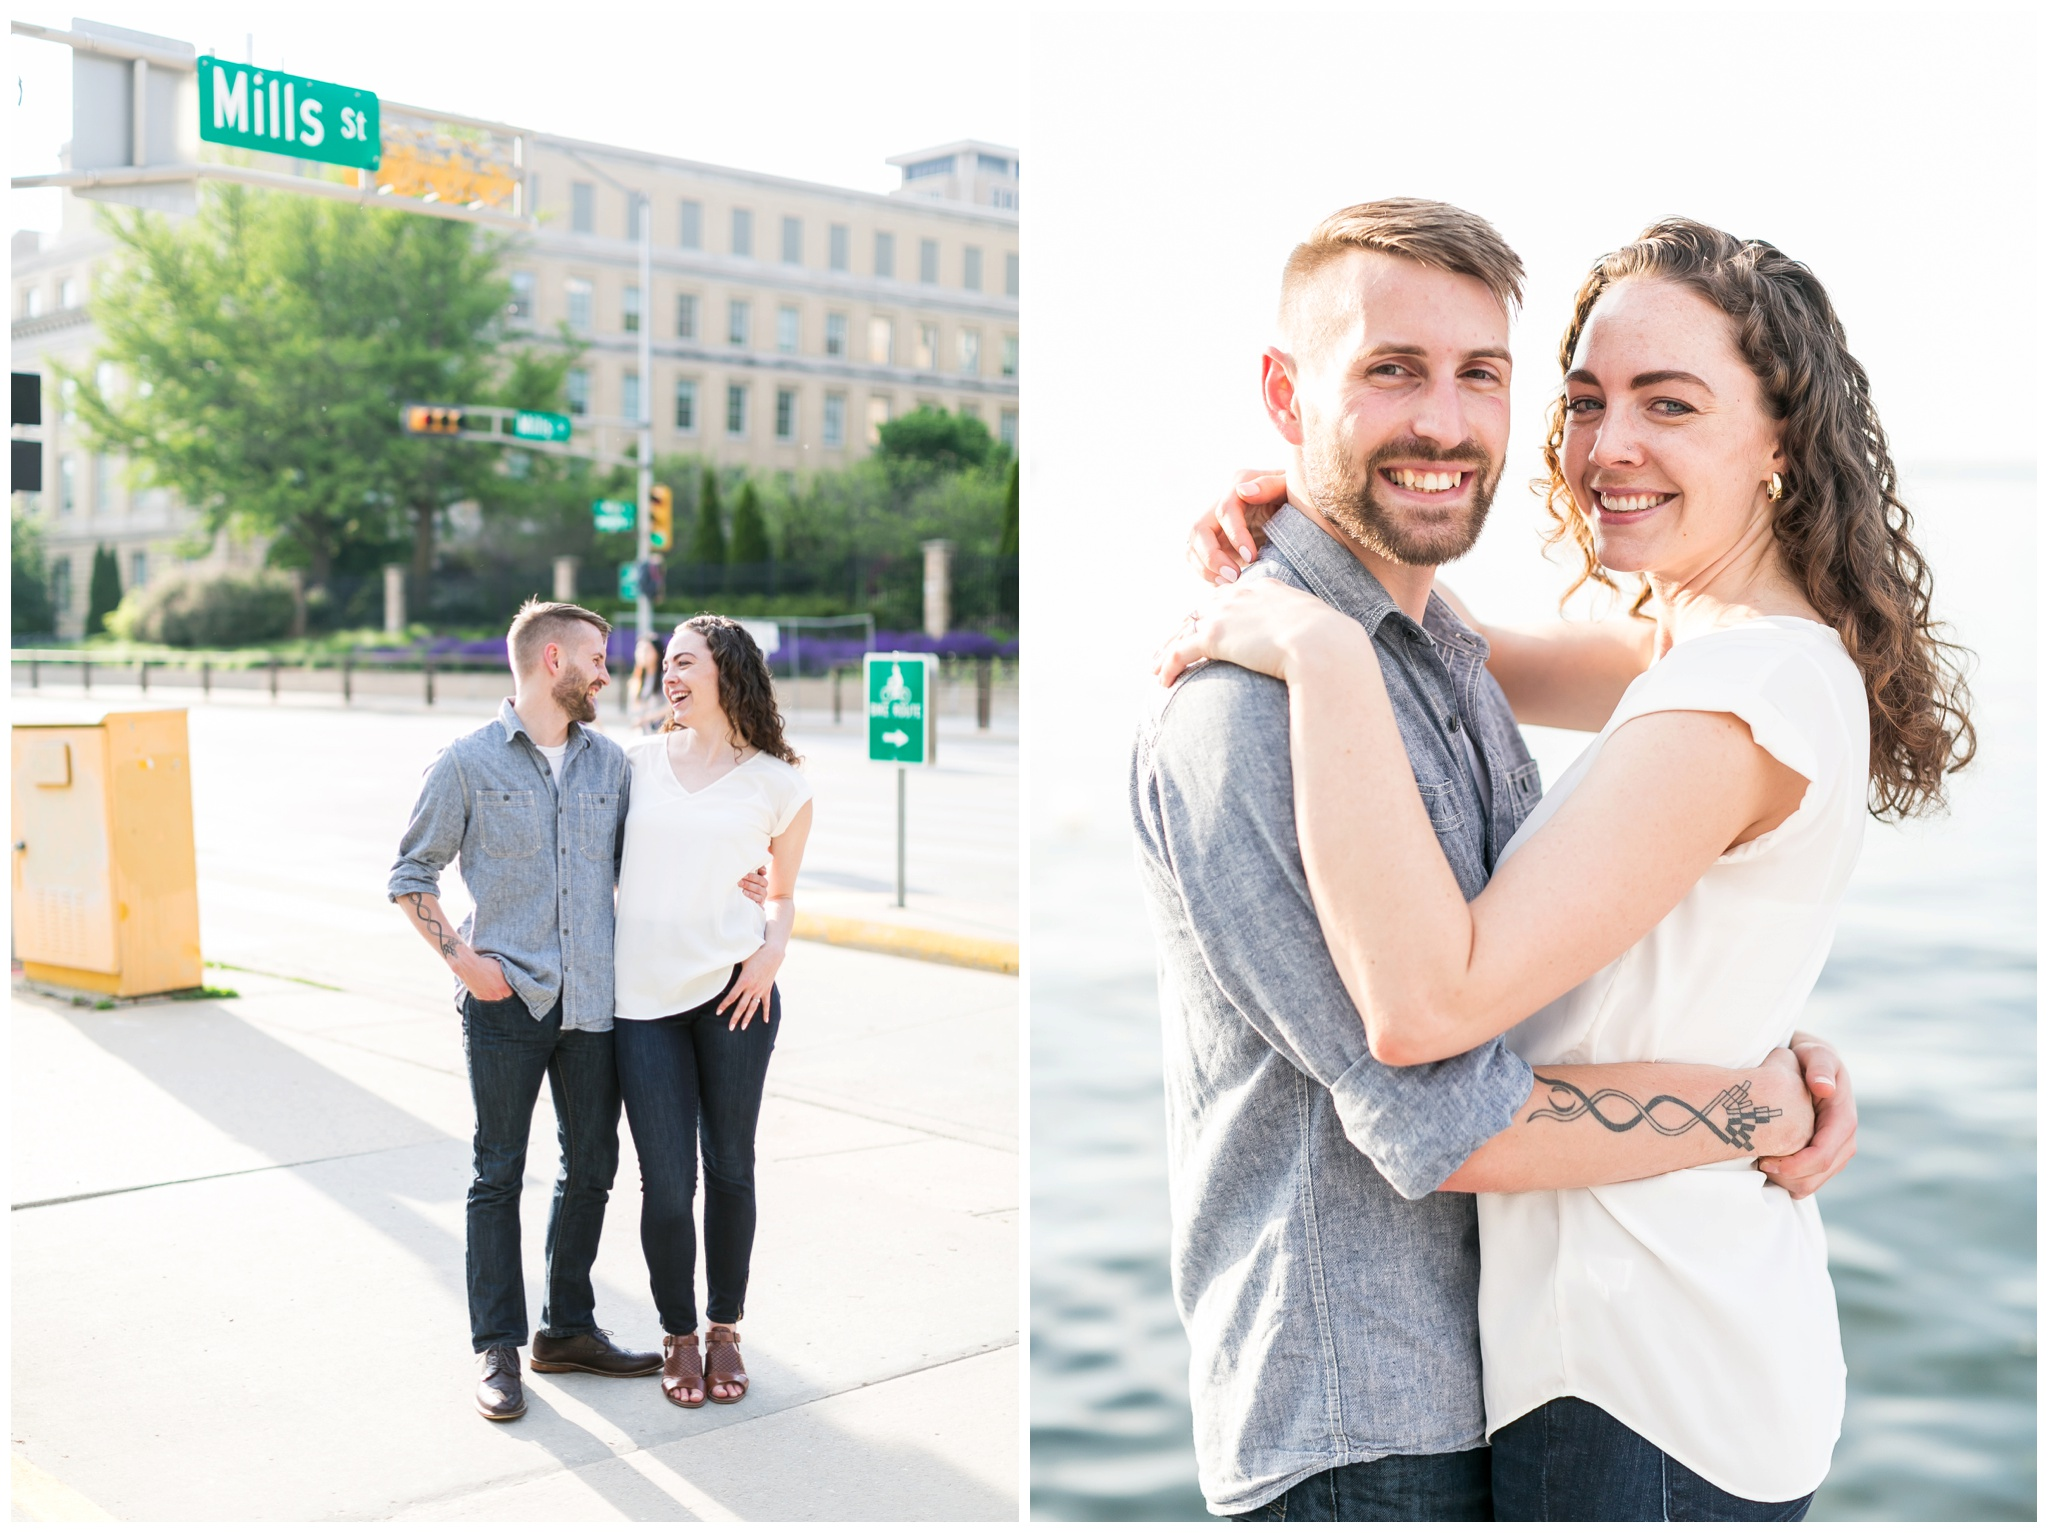 memorial_union_engagement_session_madison_wisconsin_photographers_3788.jpg